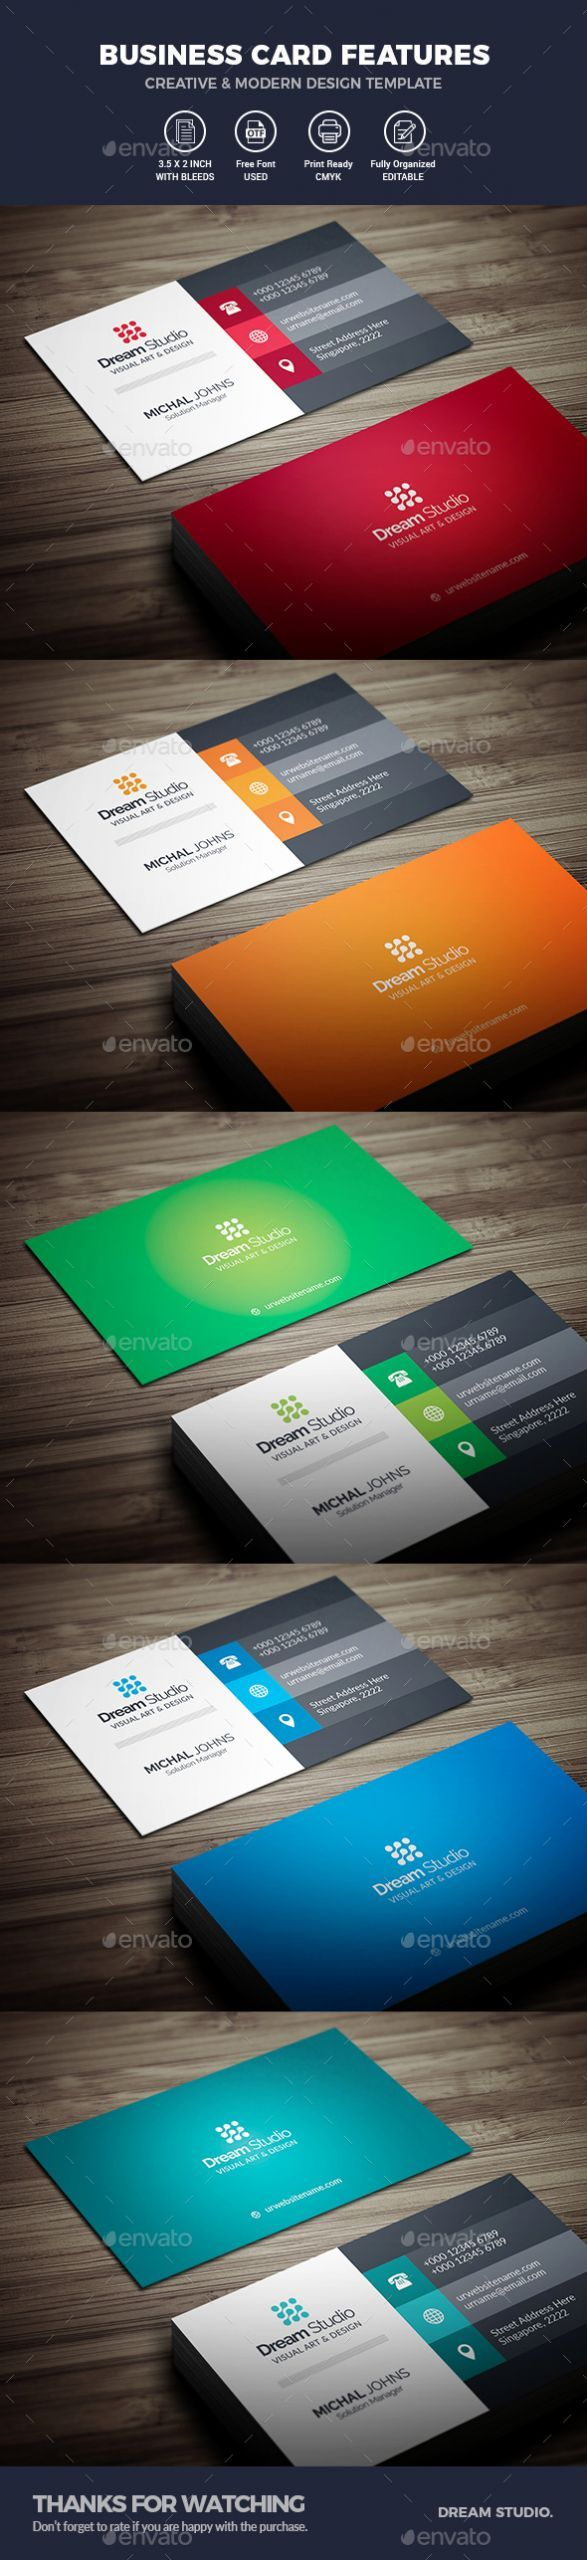 Moo Com Business Card Template Unique Visiting Card Graphics Designs Templates From Grap In 2020 Business Card Design Printing Business Cards Business Cards Creative